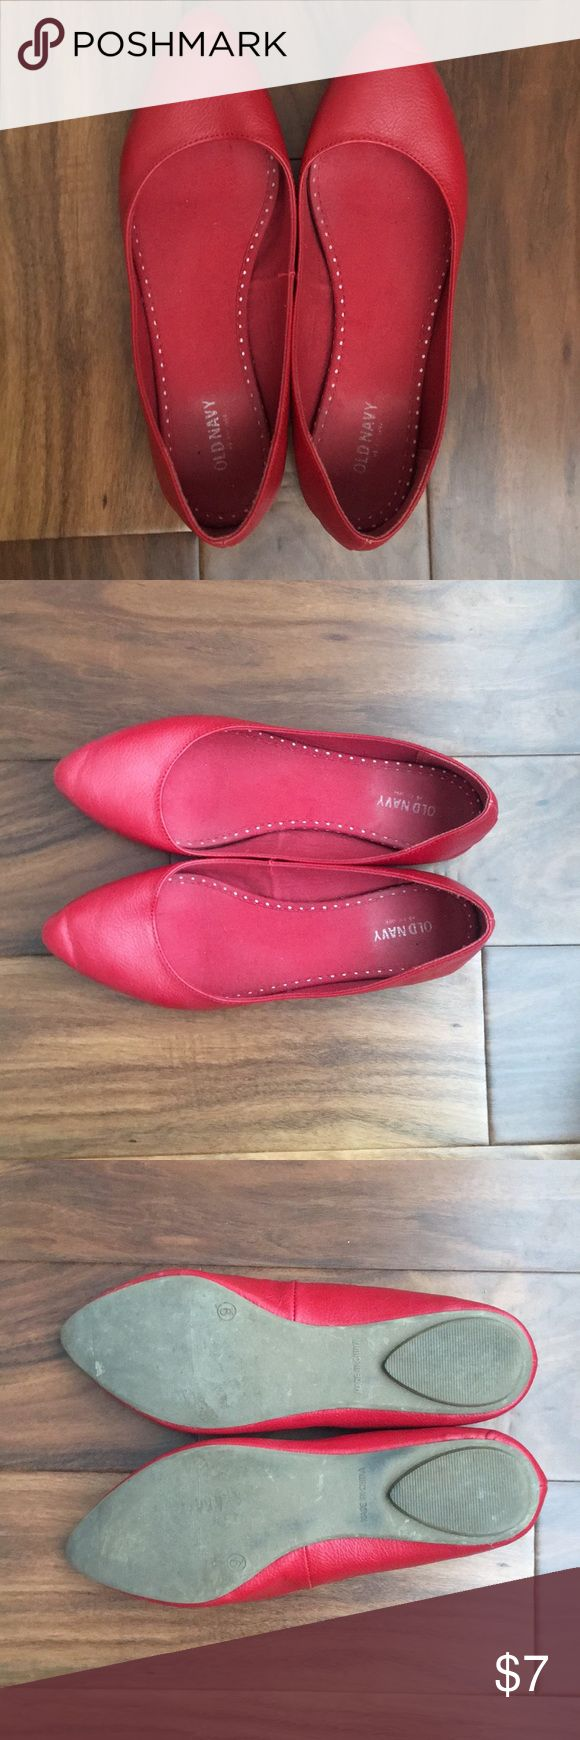 Old Navy women's red pointed toe flats size 9 Old Navy women's red pointed toe flats. Size 9. Fit true to size. Gently worn in great condition. Old Navy Shoes Flats & Loafers